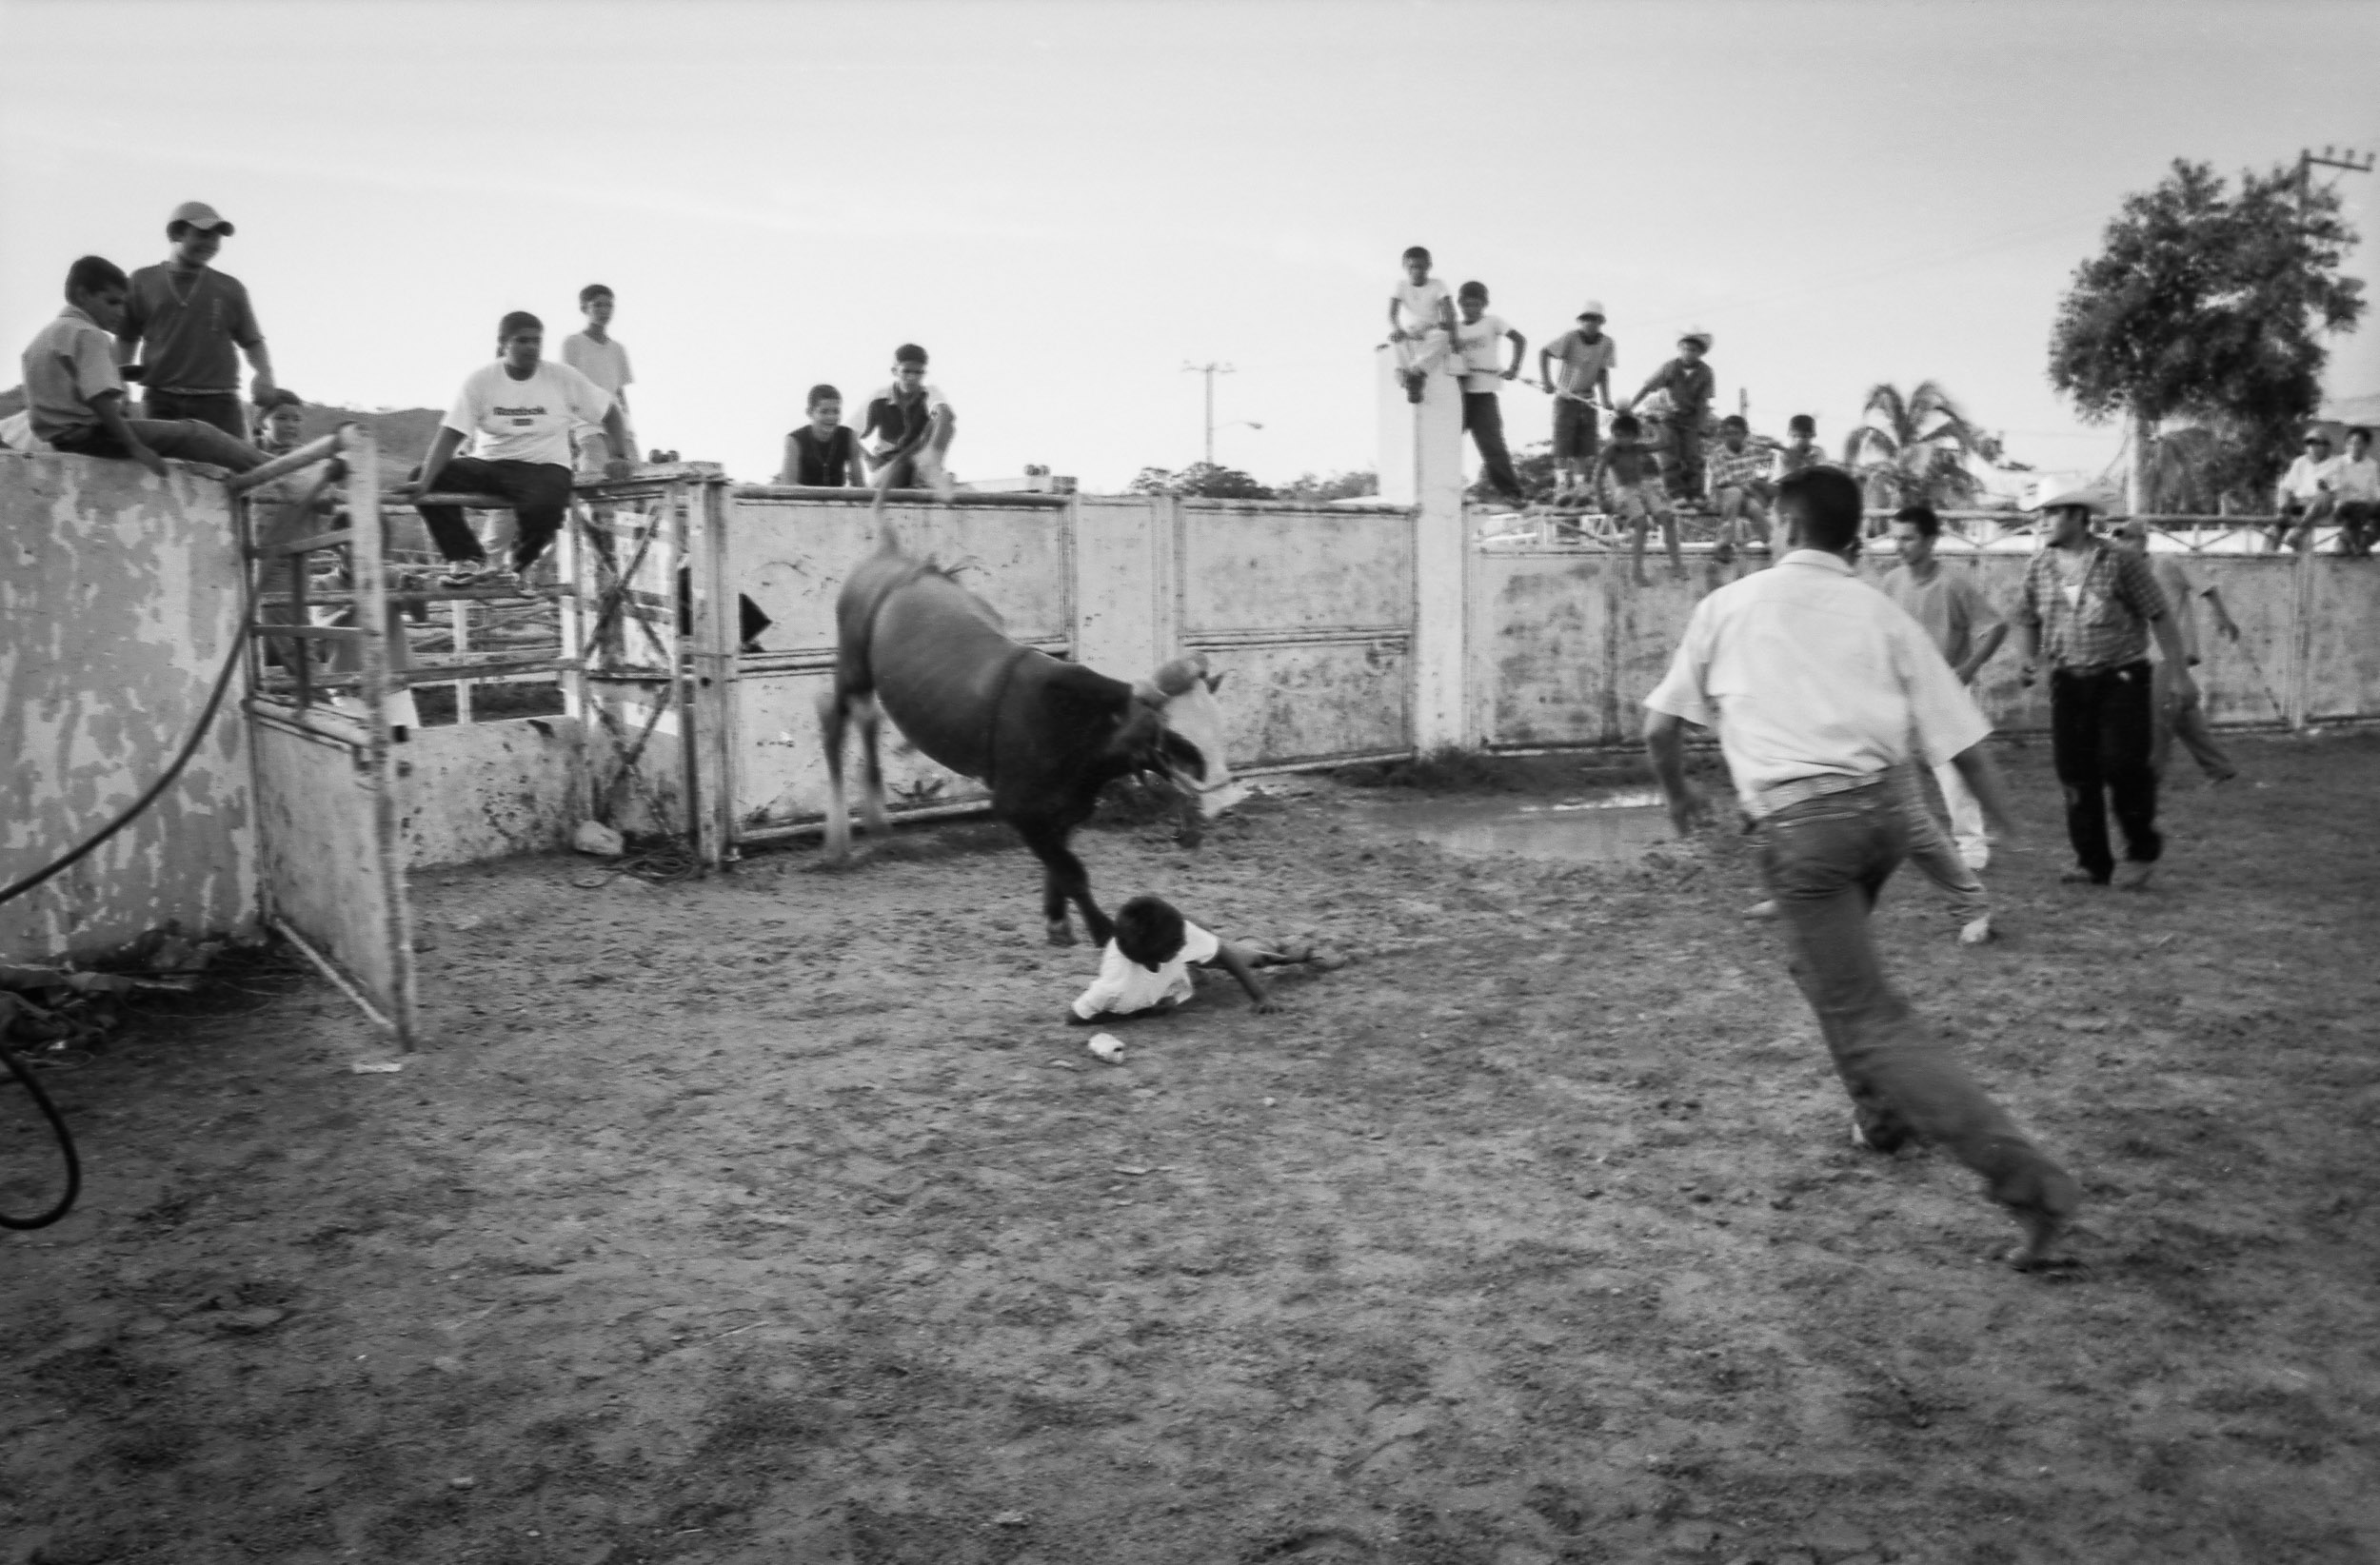 Youth Rodeo, Punta De Mita, Mexico